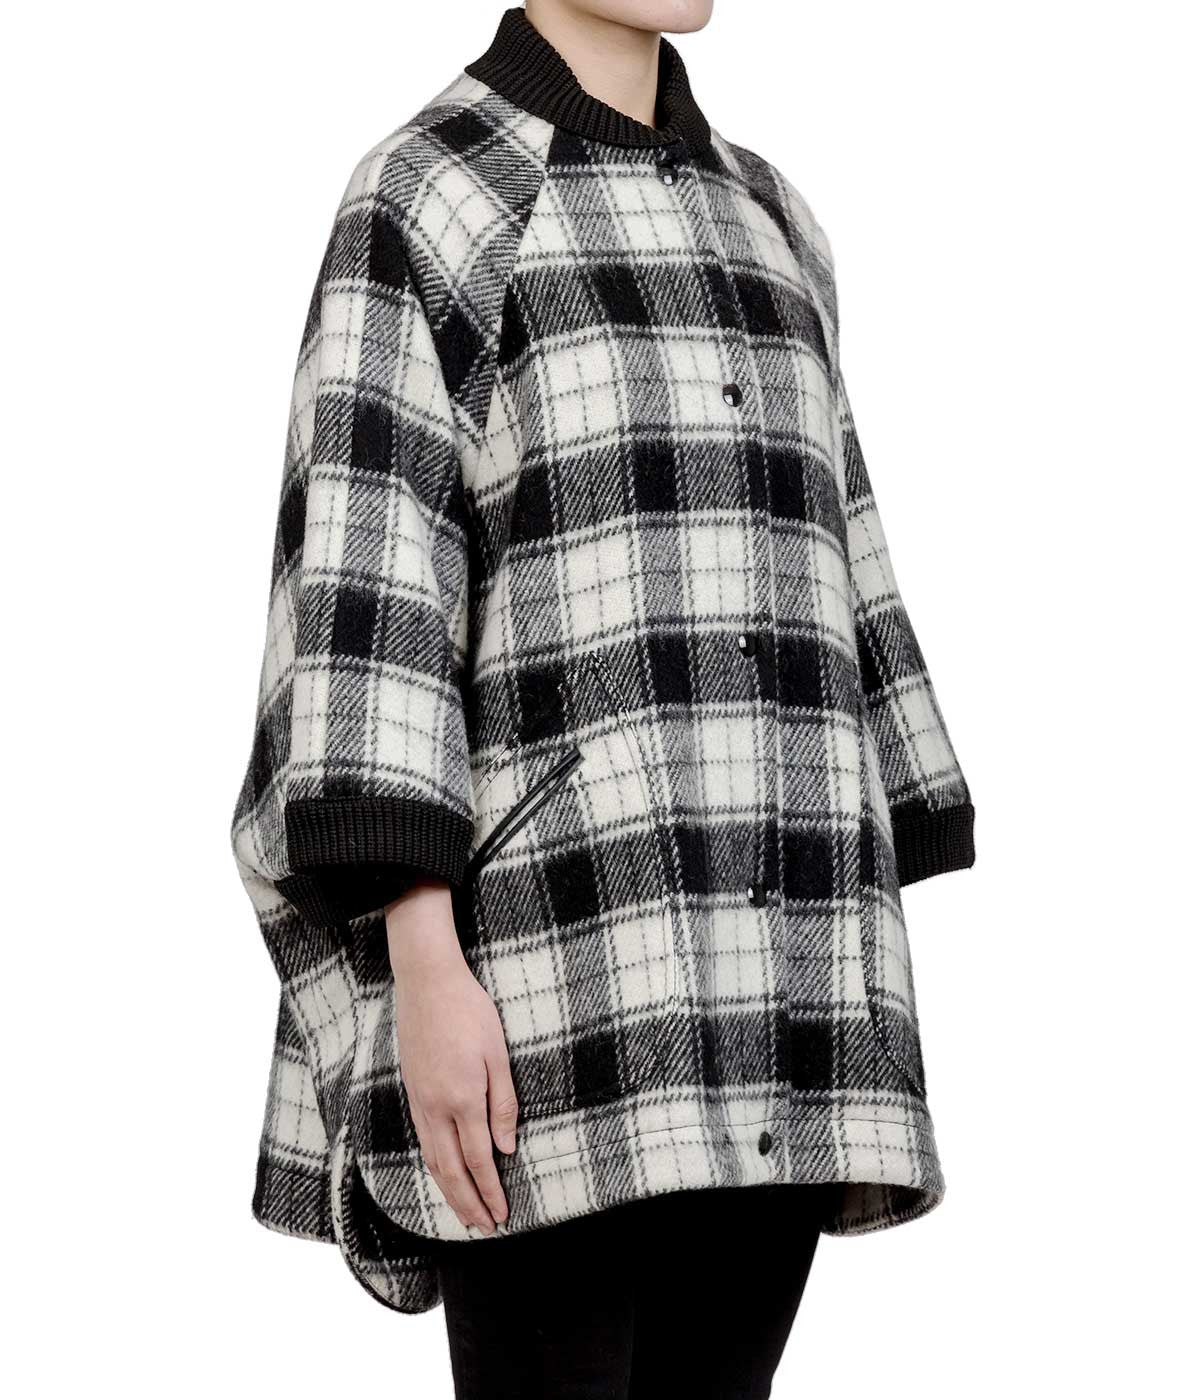 Black & White Oversized Plaid Cape